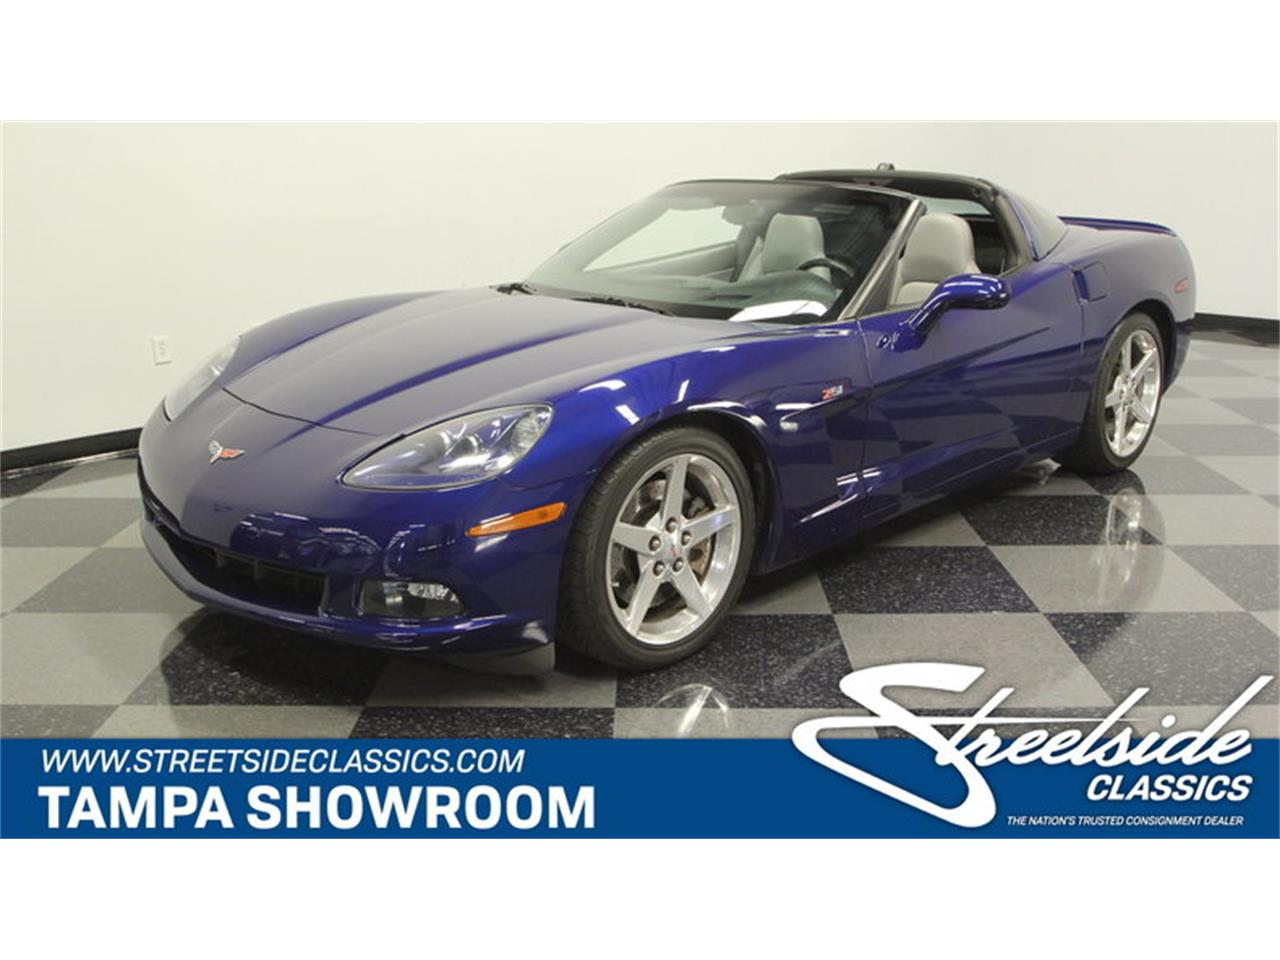 For Sale: 2005 Chevrolet Corvette in Lutz, Florida